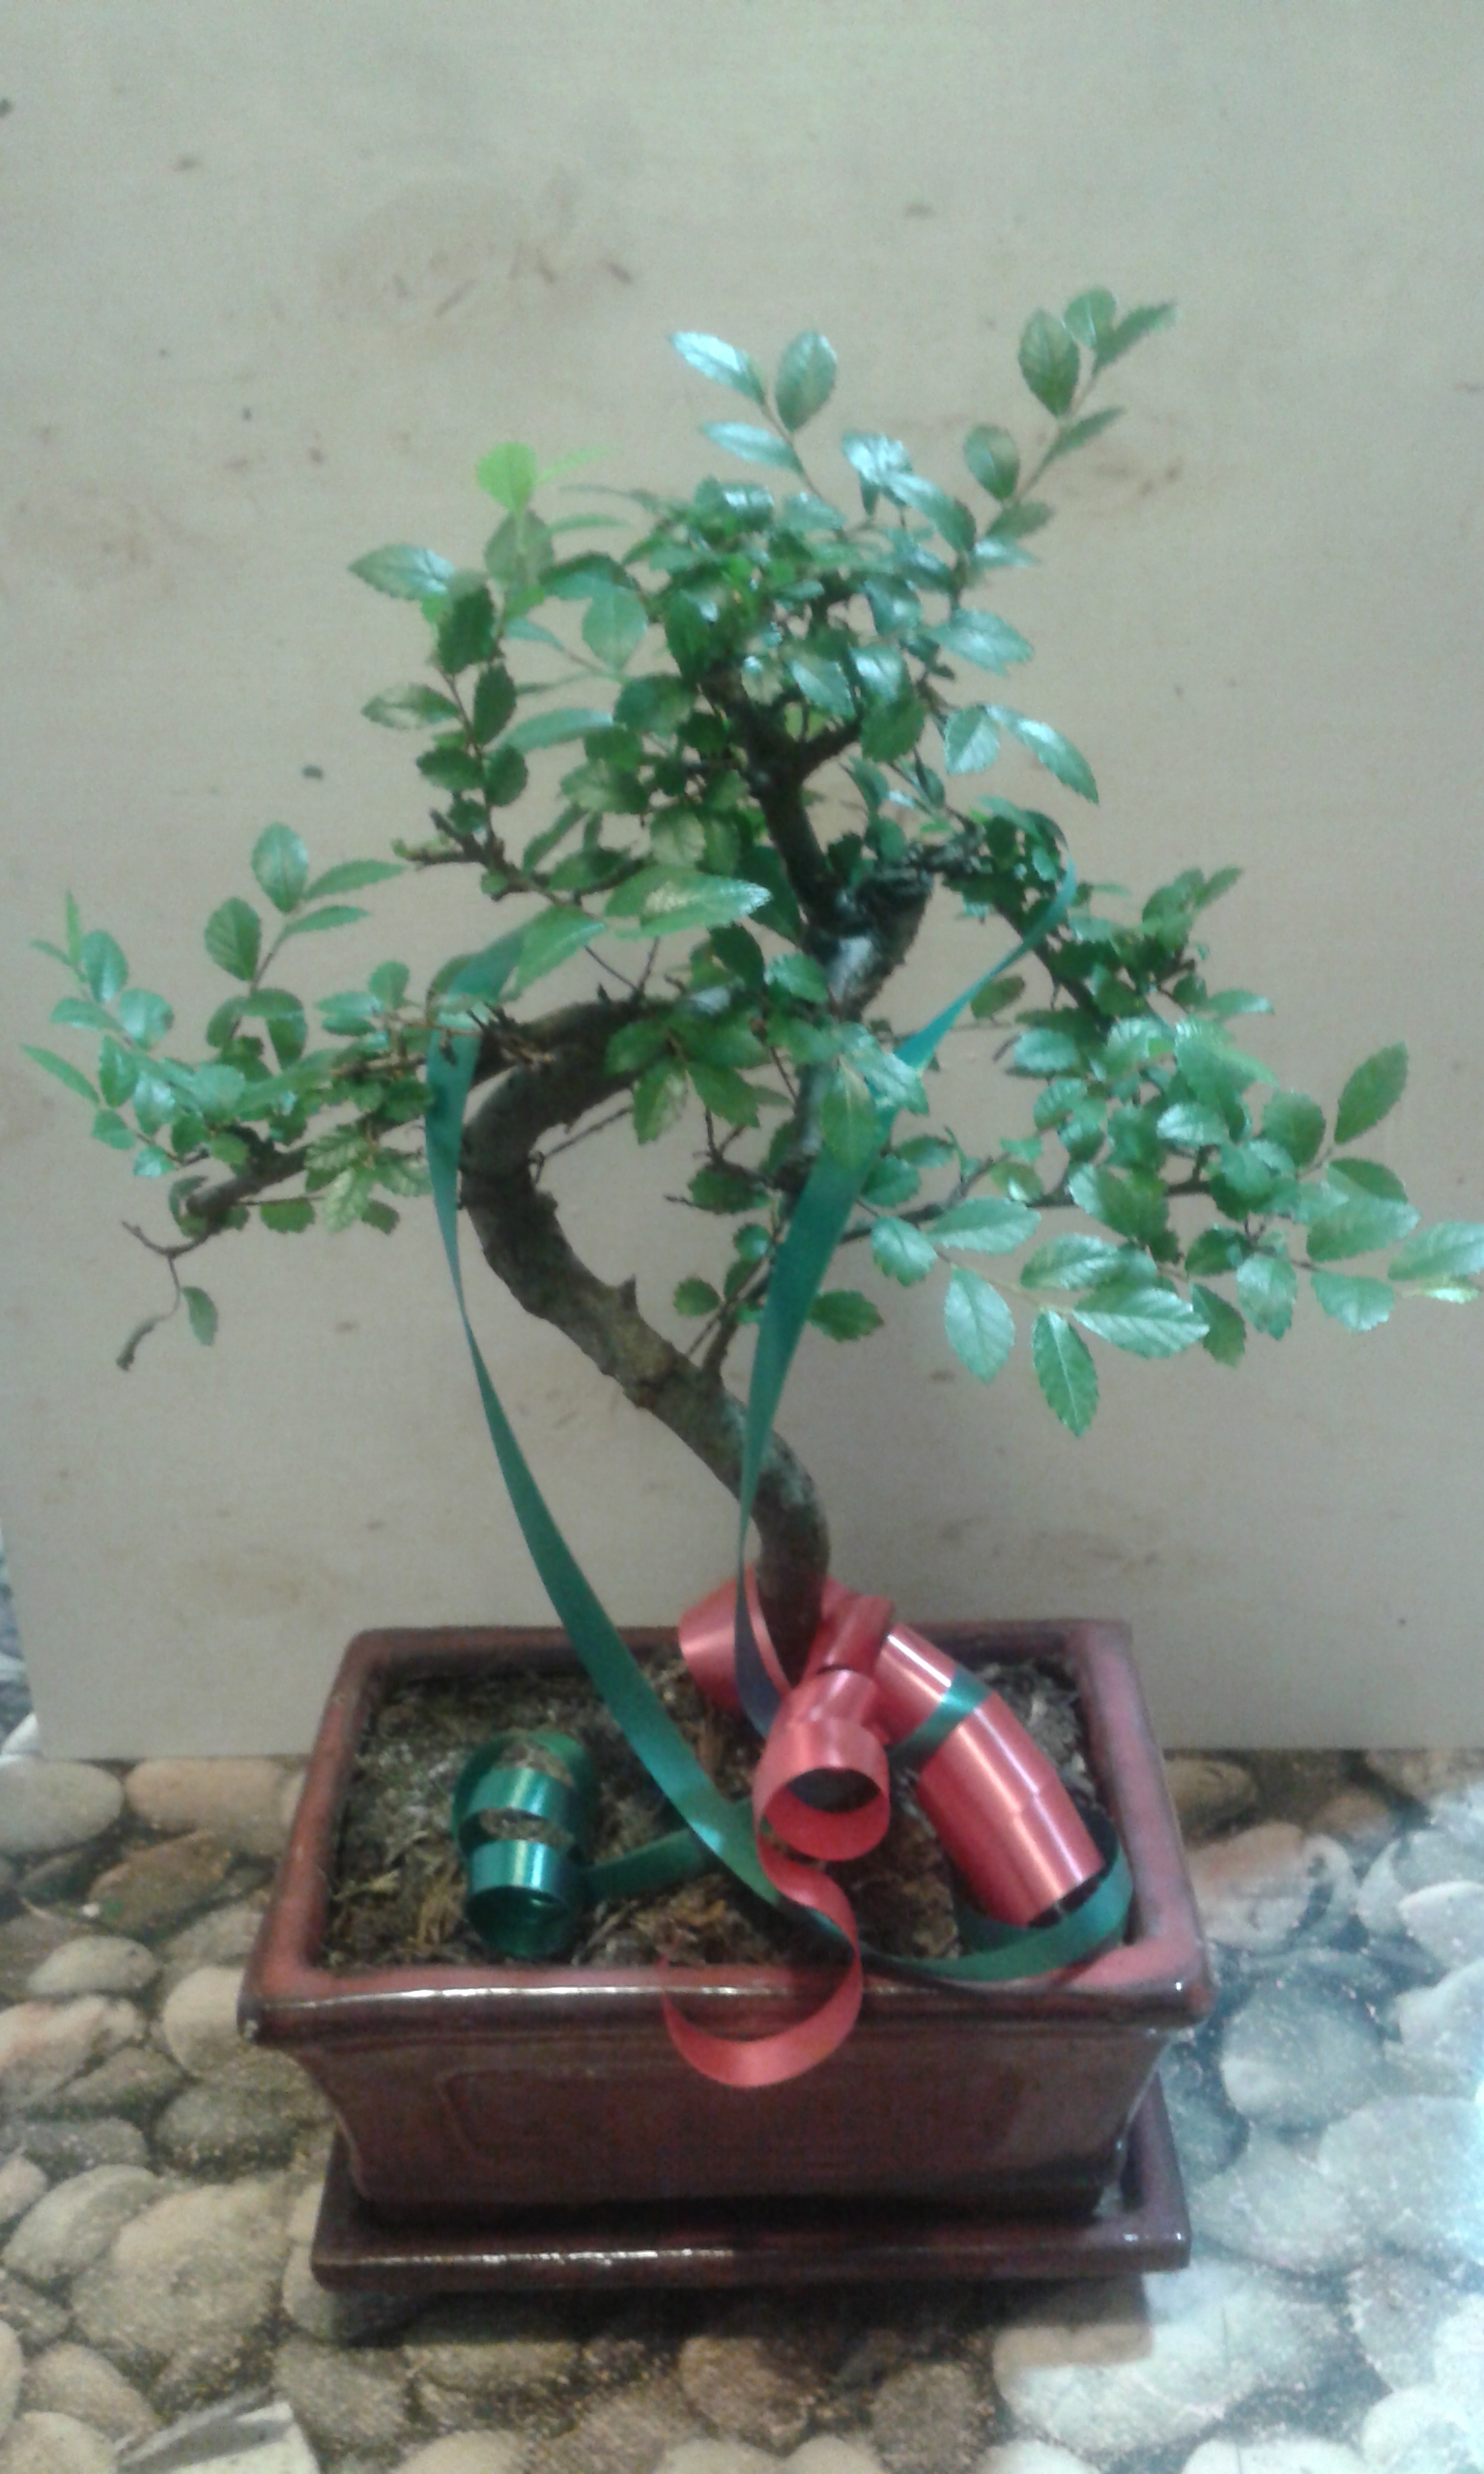 Envio de bonsai a domicilio